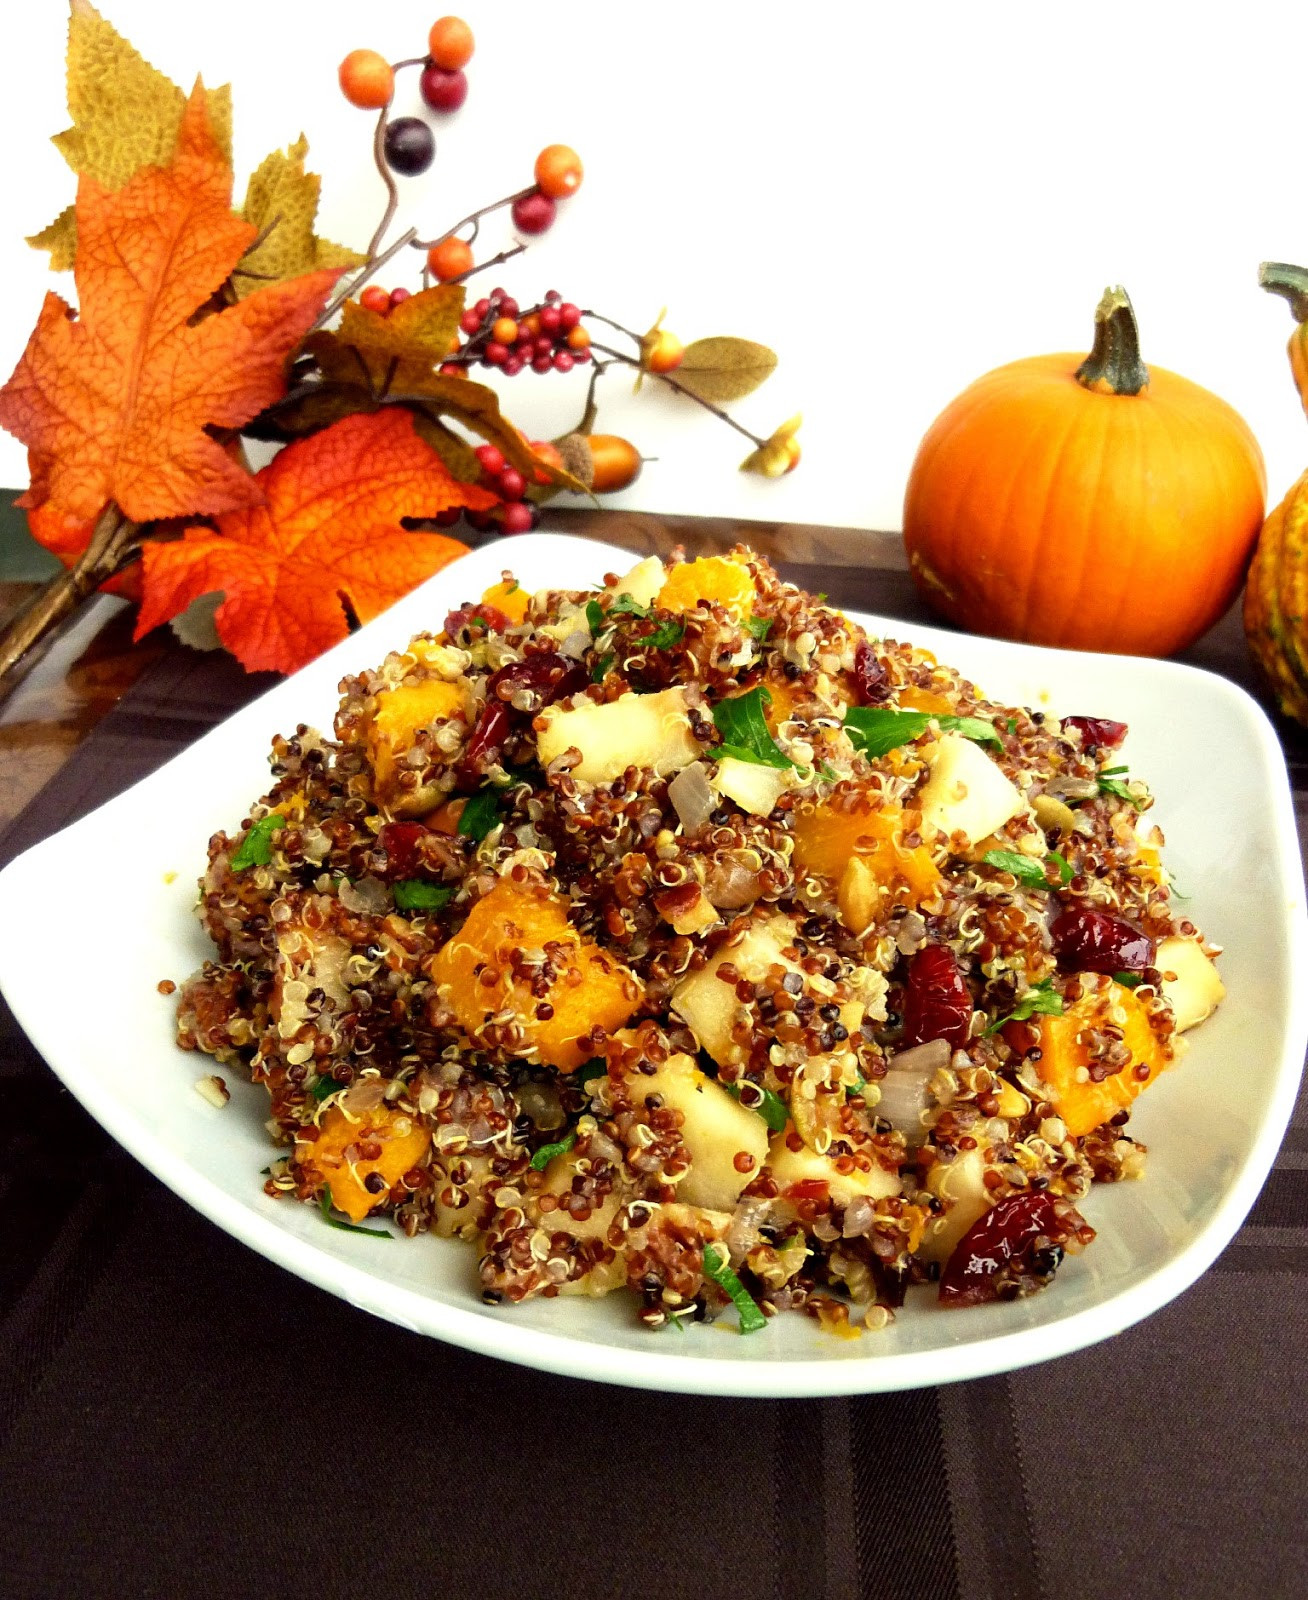 Vegetarian Thanksgiving Dishes  Vanilla & Spice Recipes for a Ve arian Thanksgiving